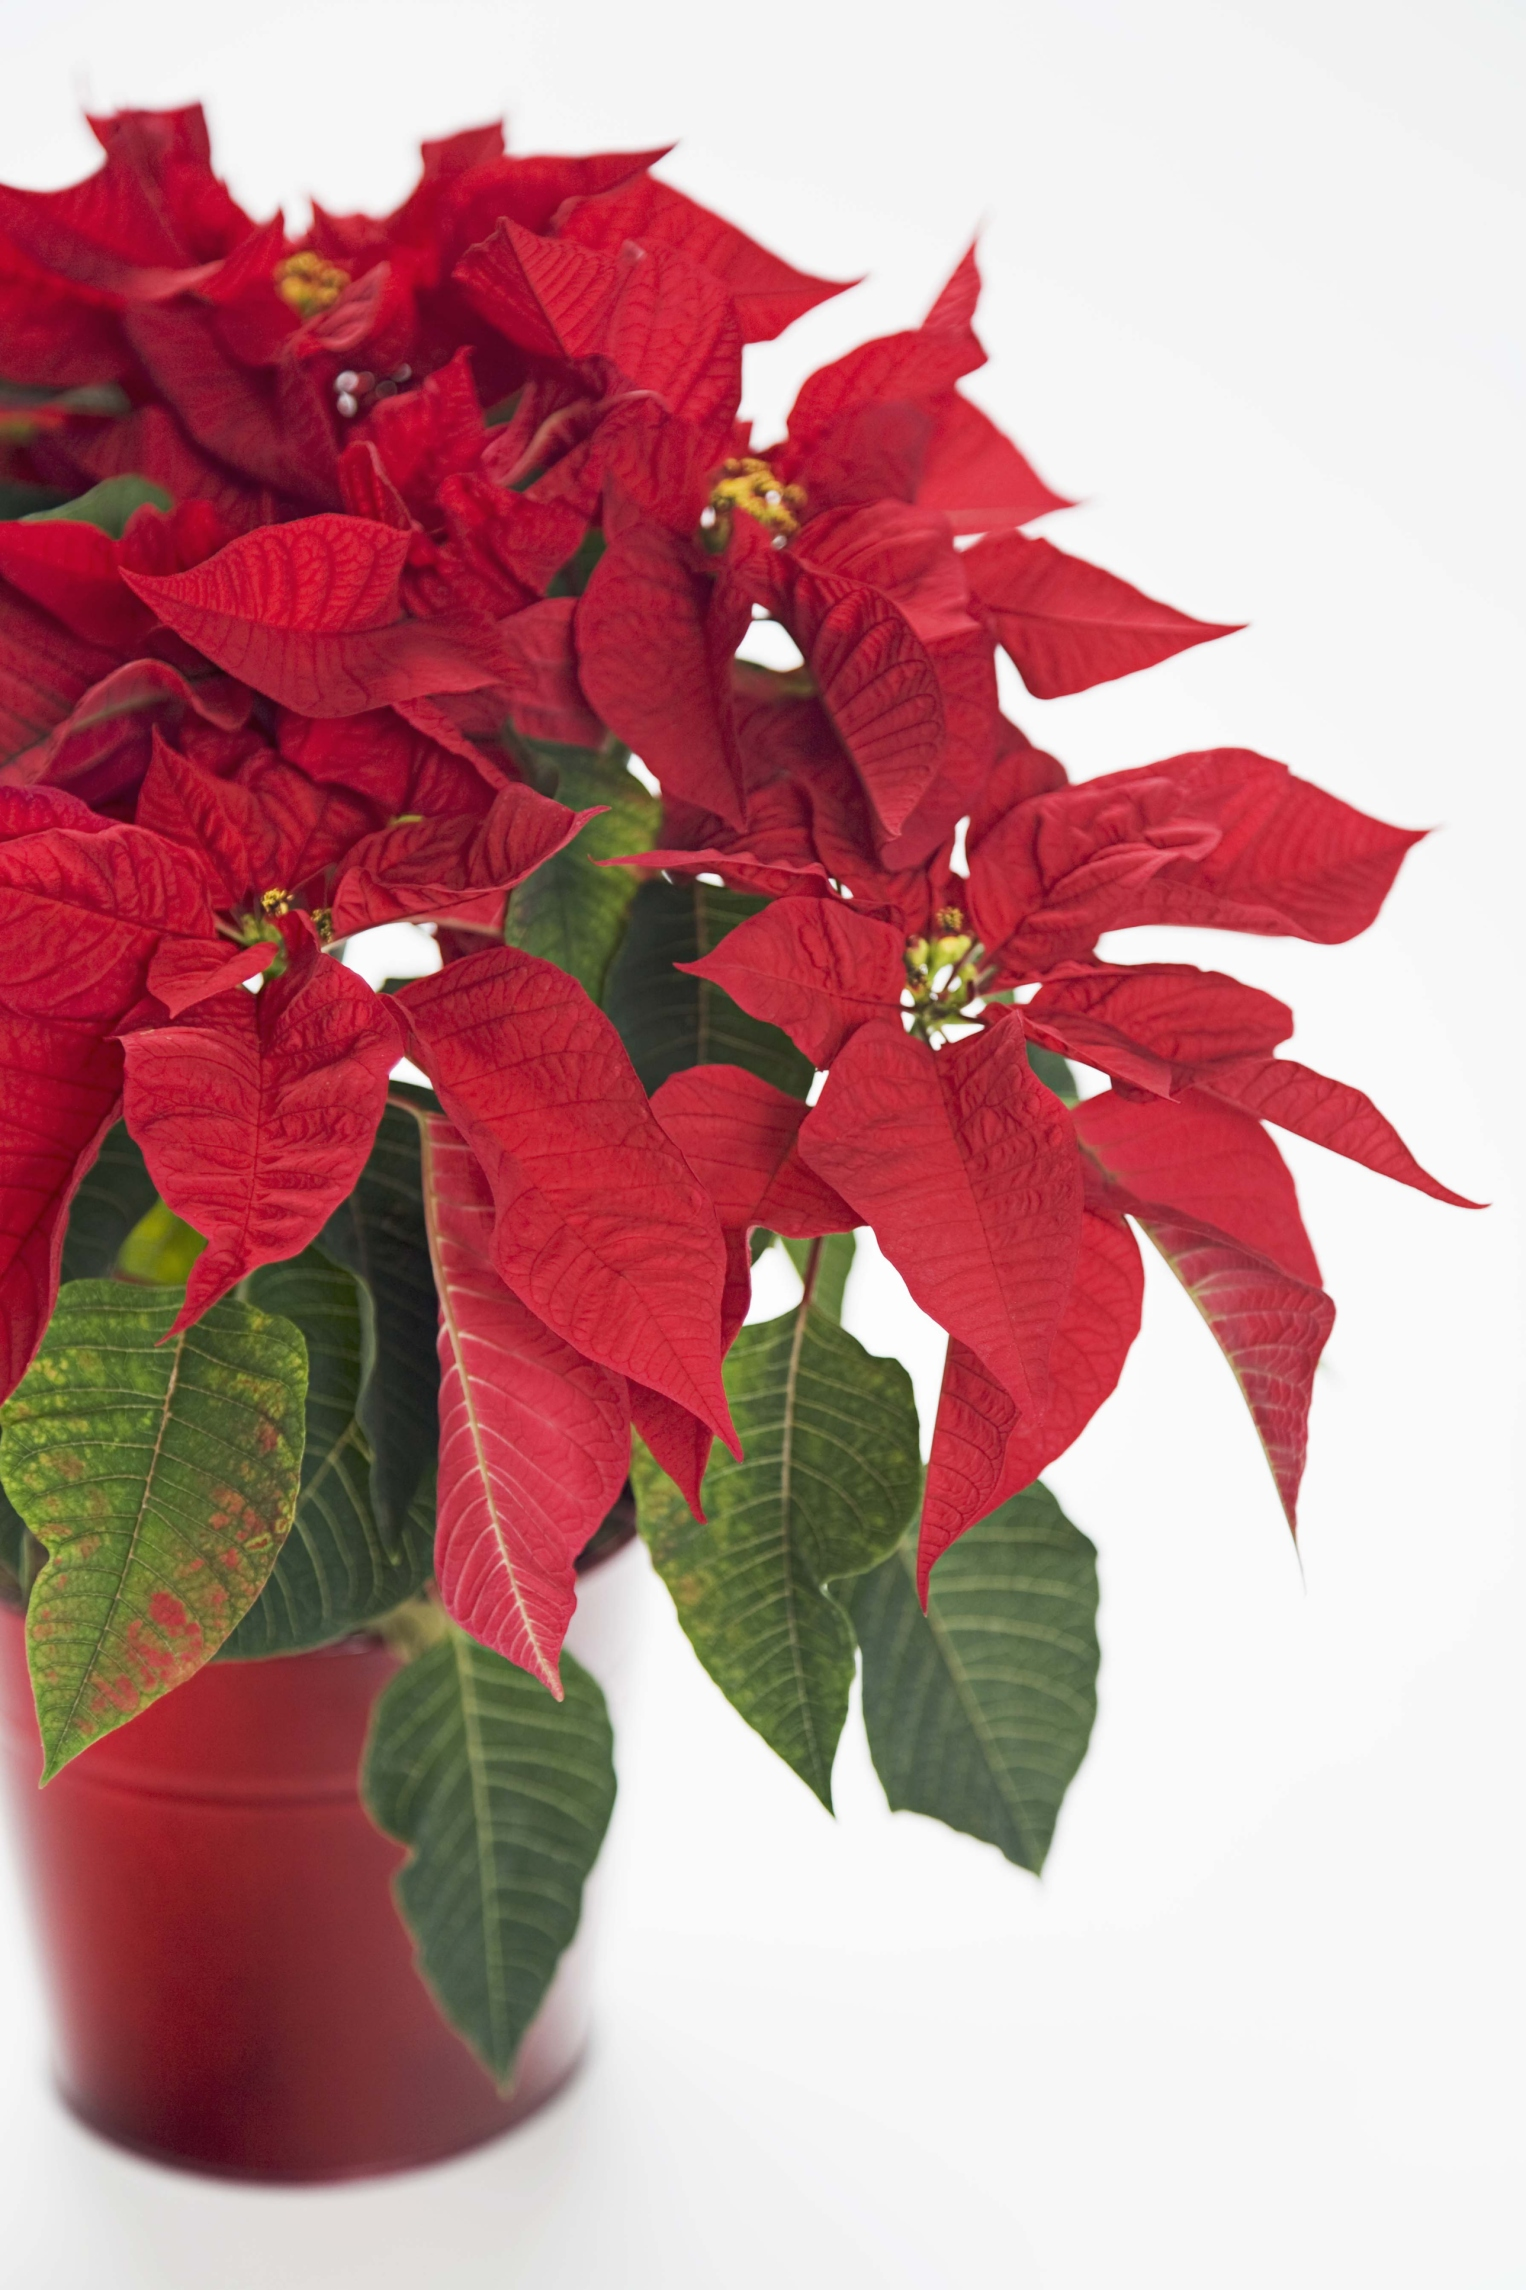 Poinsettia care at home 95